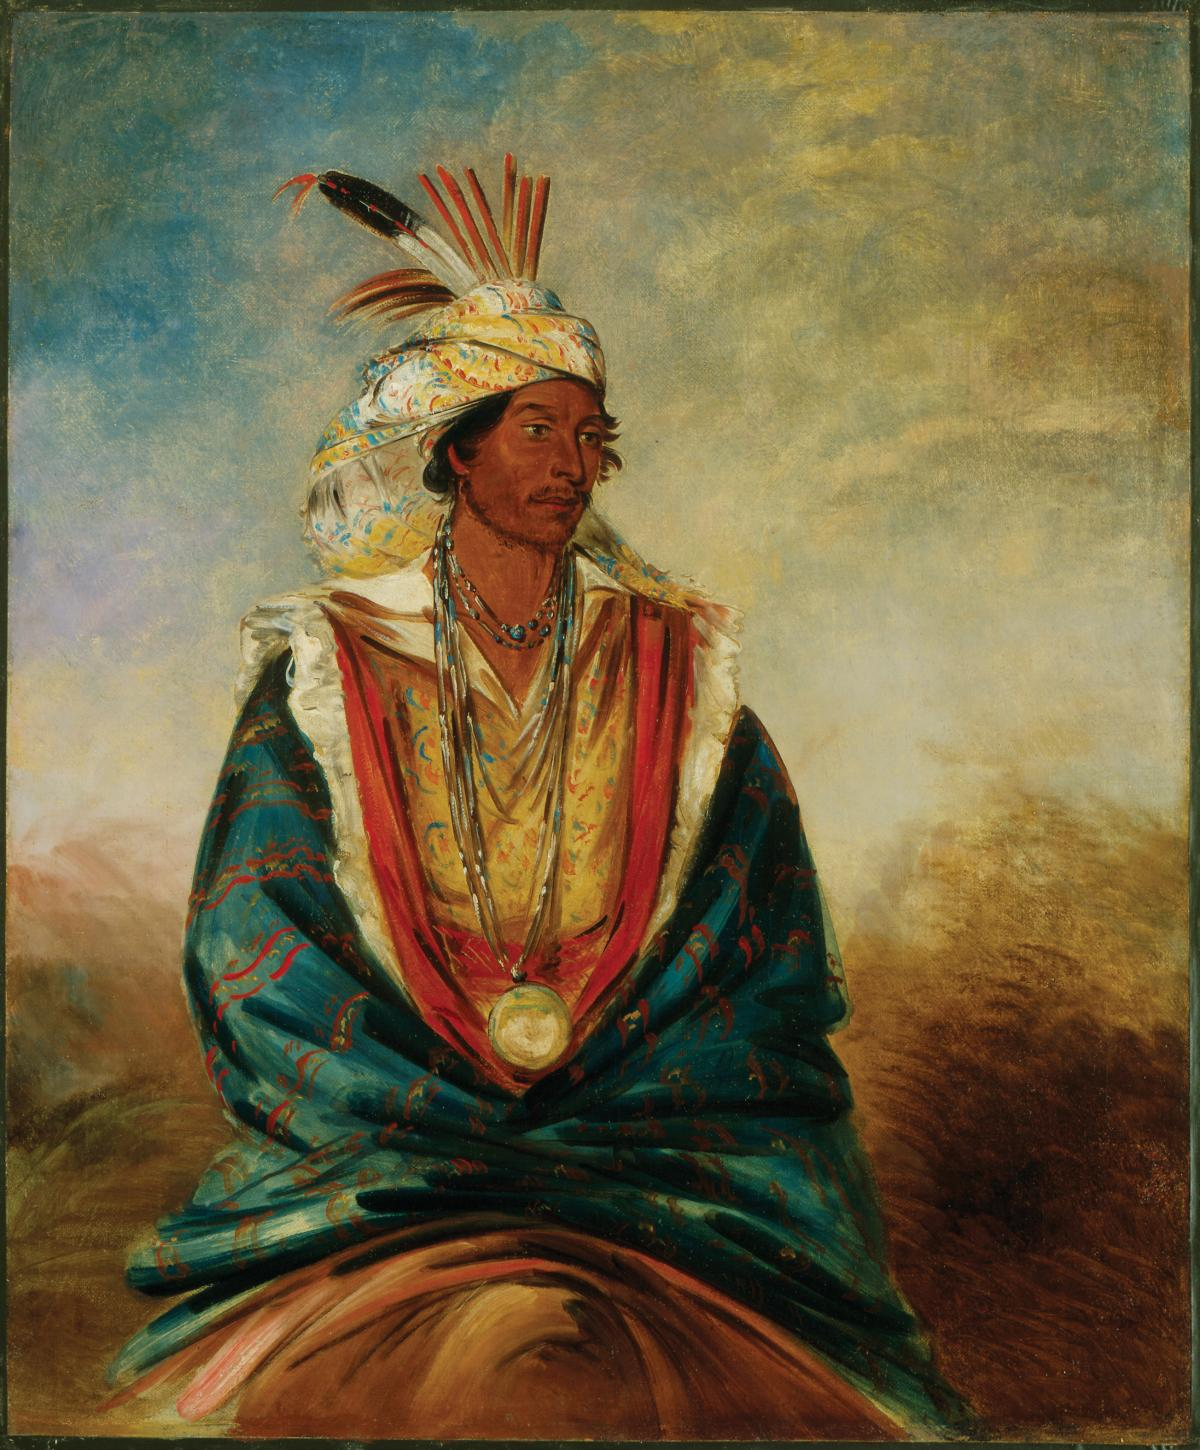 seated creek warrior, wearing traditional feathered headdress, cloak